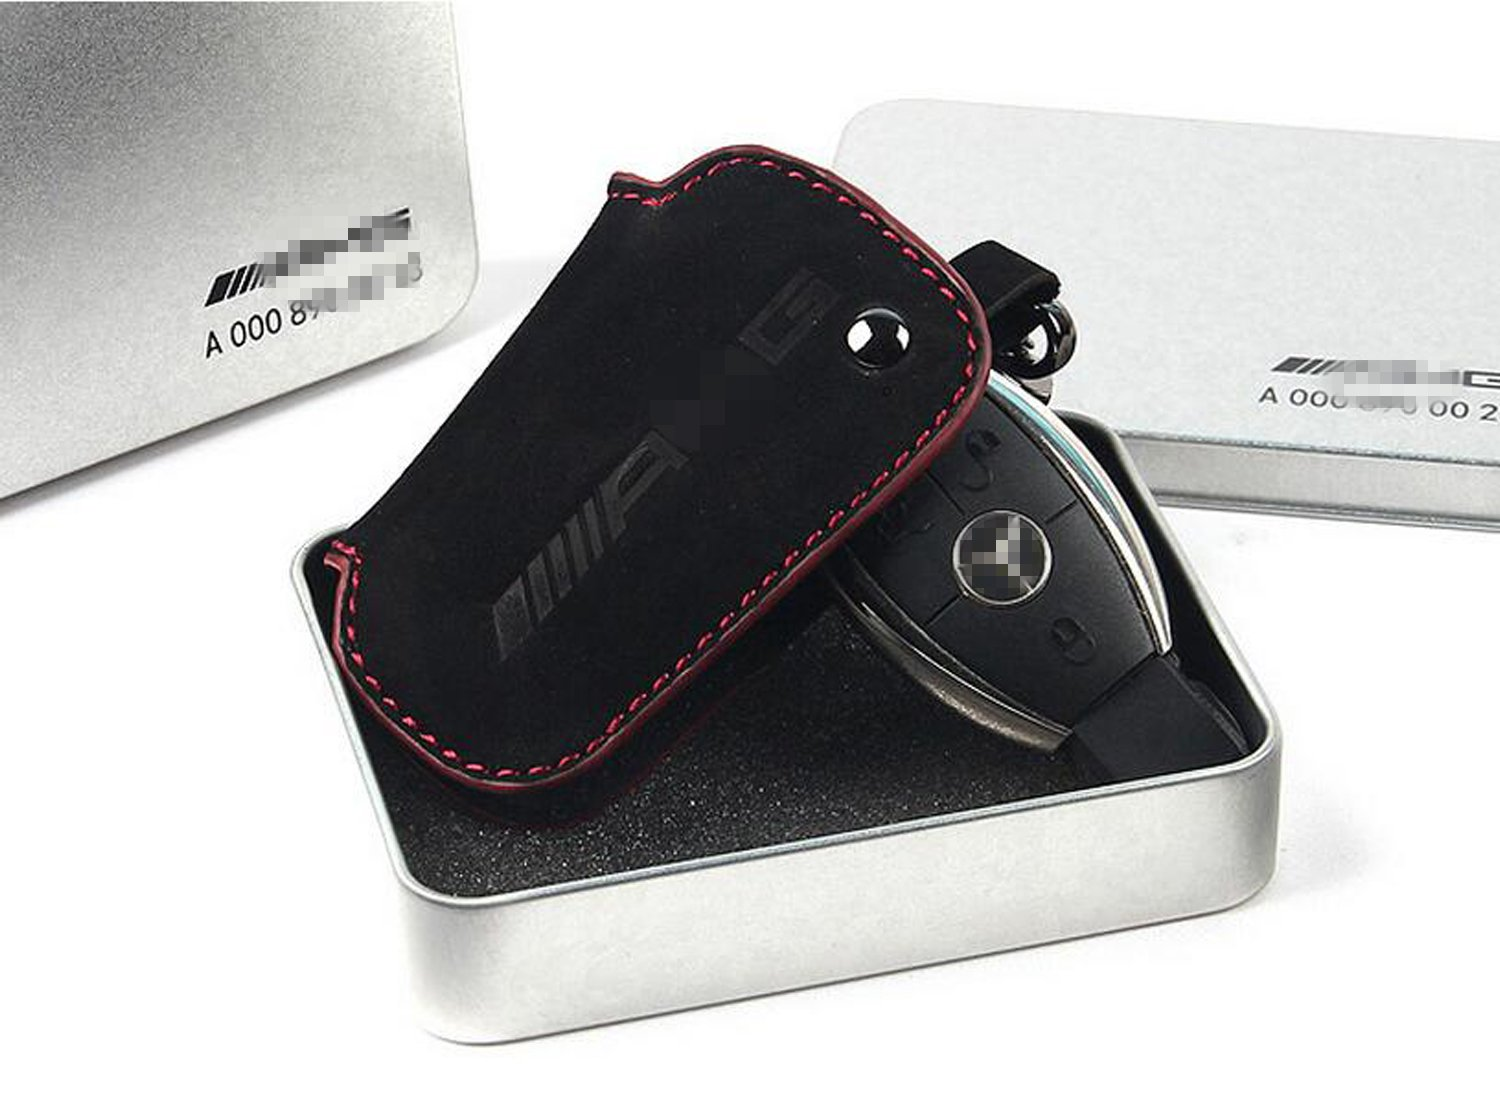 Genuine Premium Leather Key Fob Cover For Mercedes Benz Carbon fiber leather black line YIKA